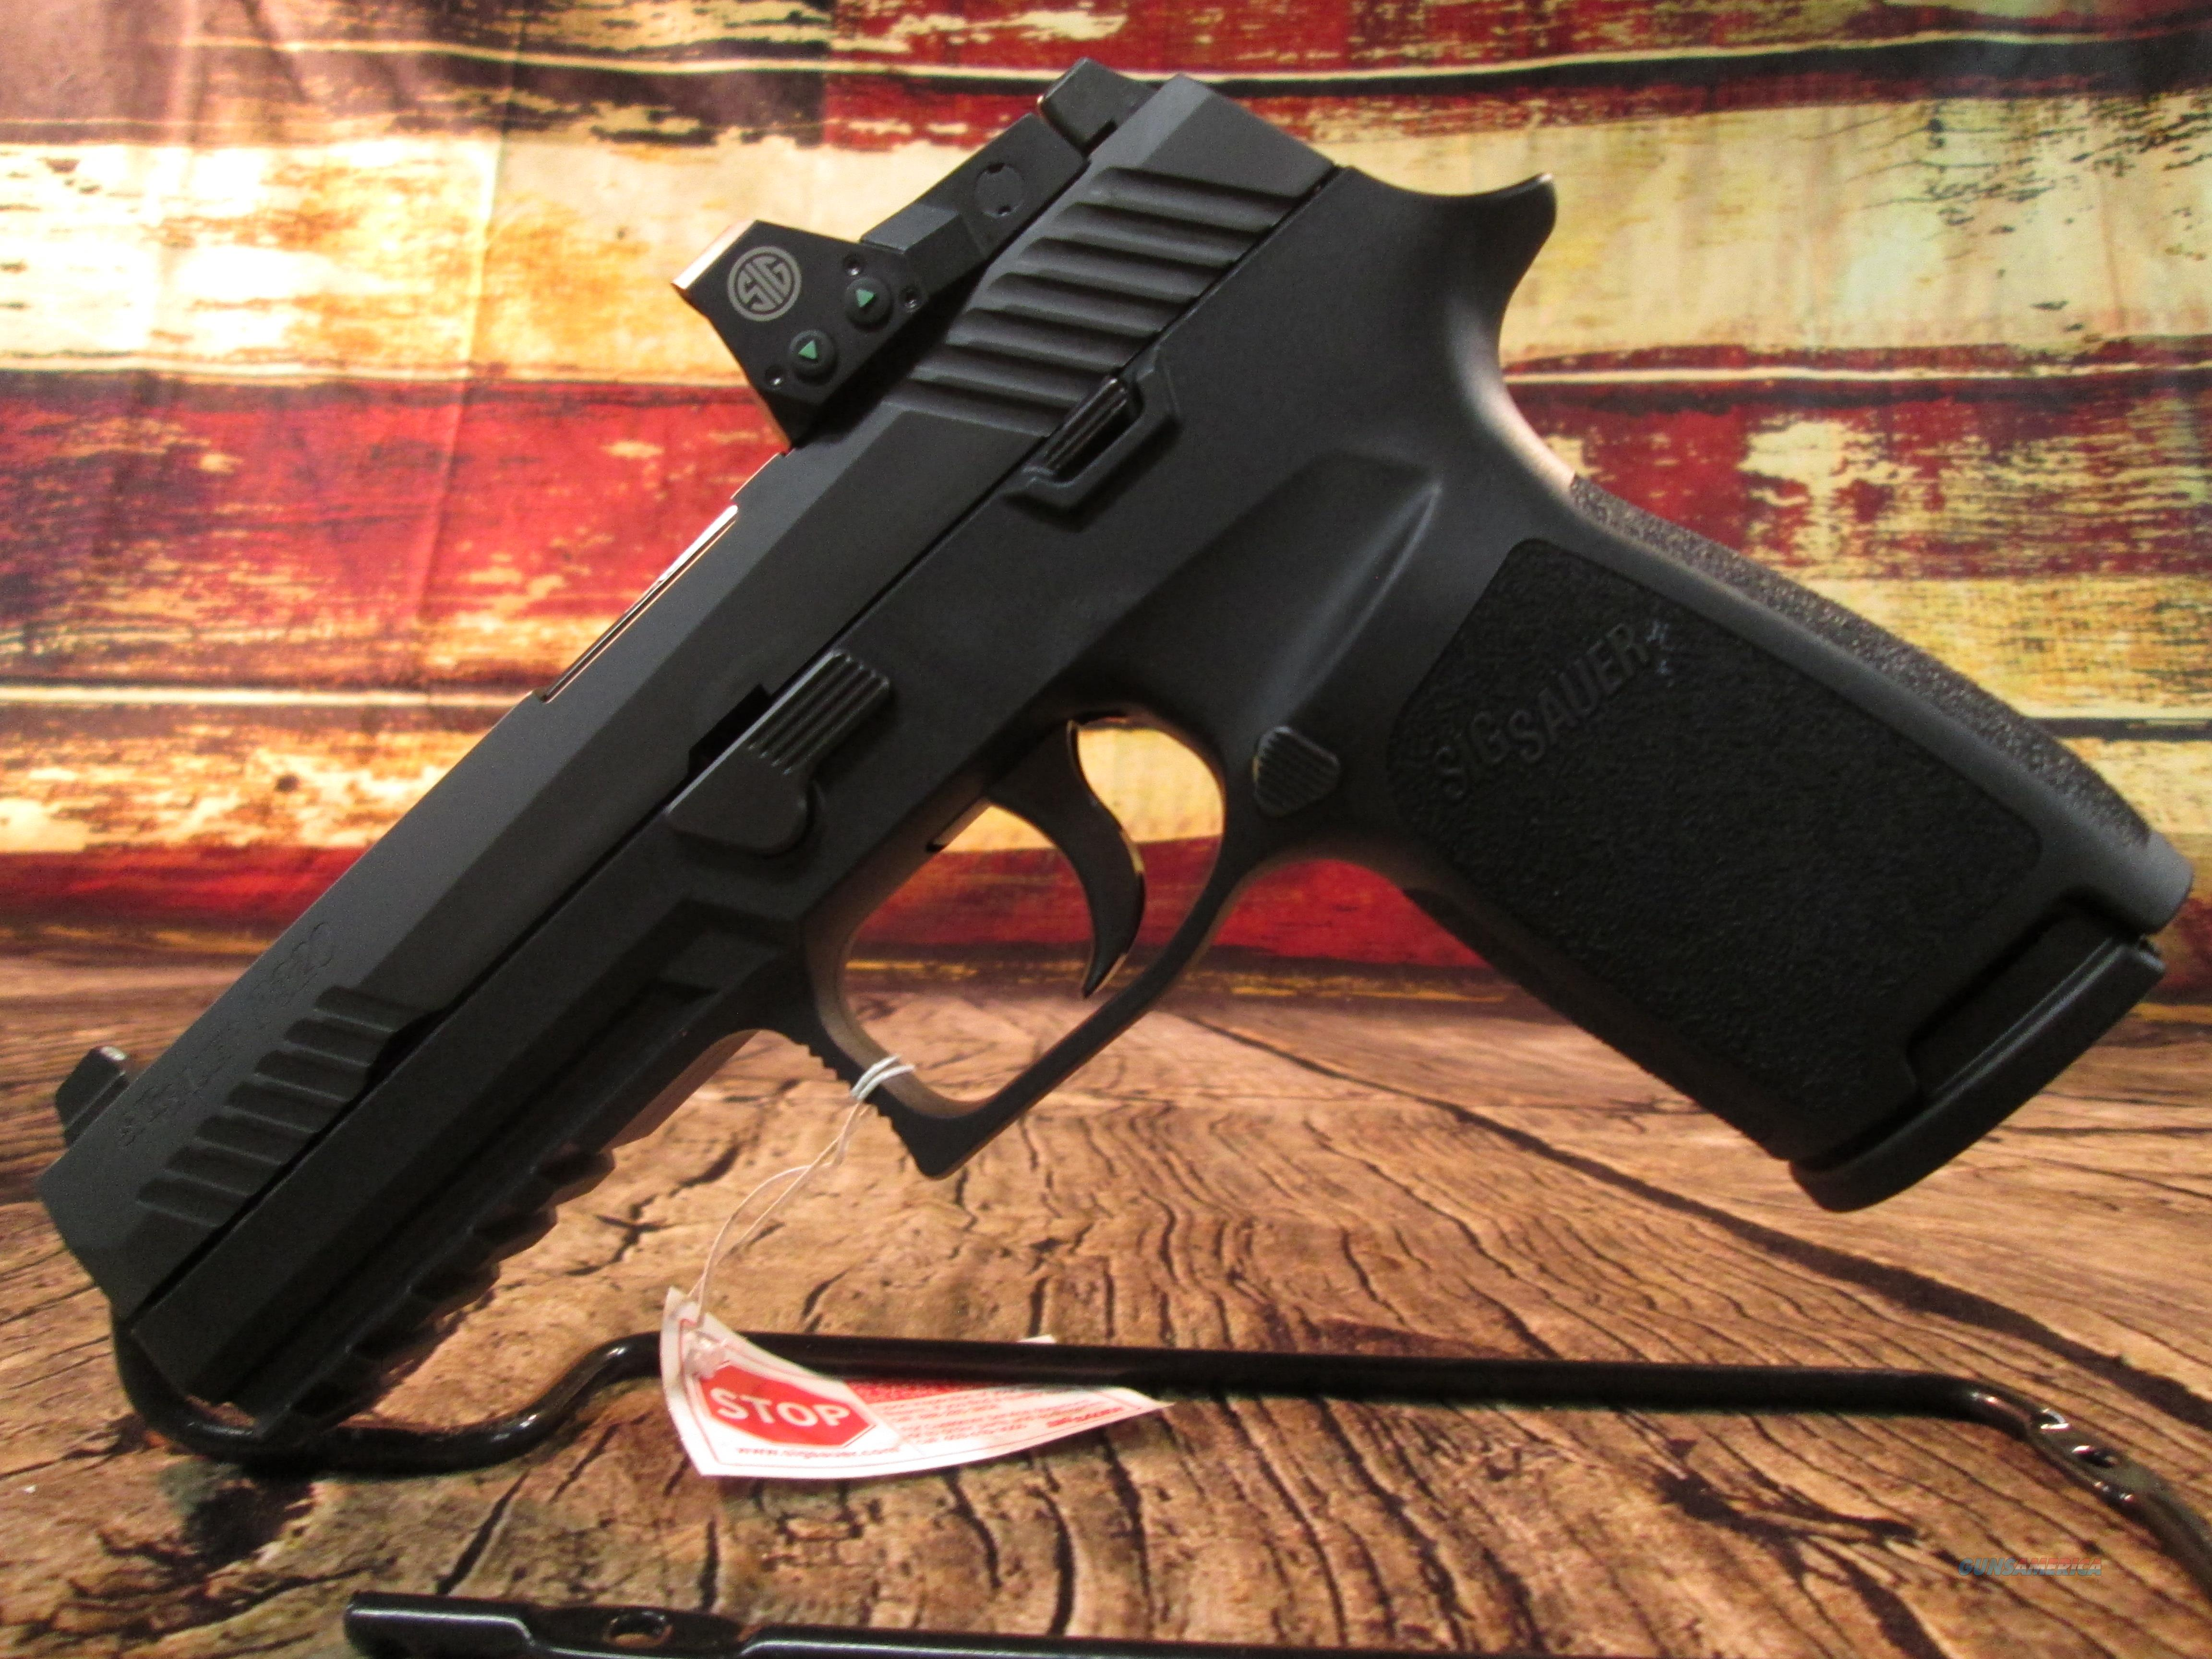 SIG SAUER P320 FULL SIZE 9MM W/ ROMEO 1 RED DOT SIGHT NEW (320F-9-BSS-RX)  Guns > Pistols > Sig - Sauer/Sigarms Pistols > P320